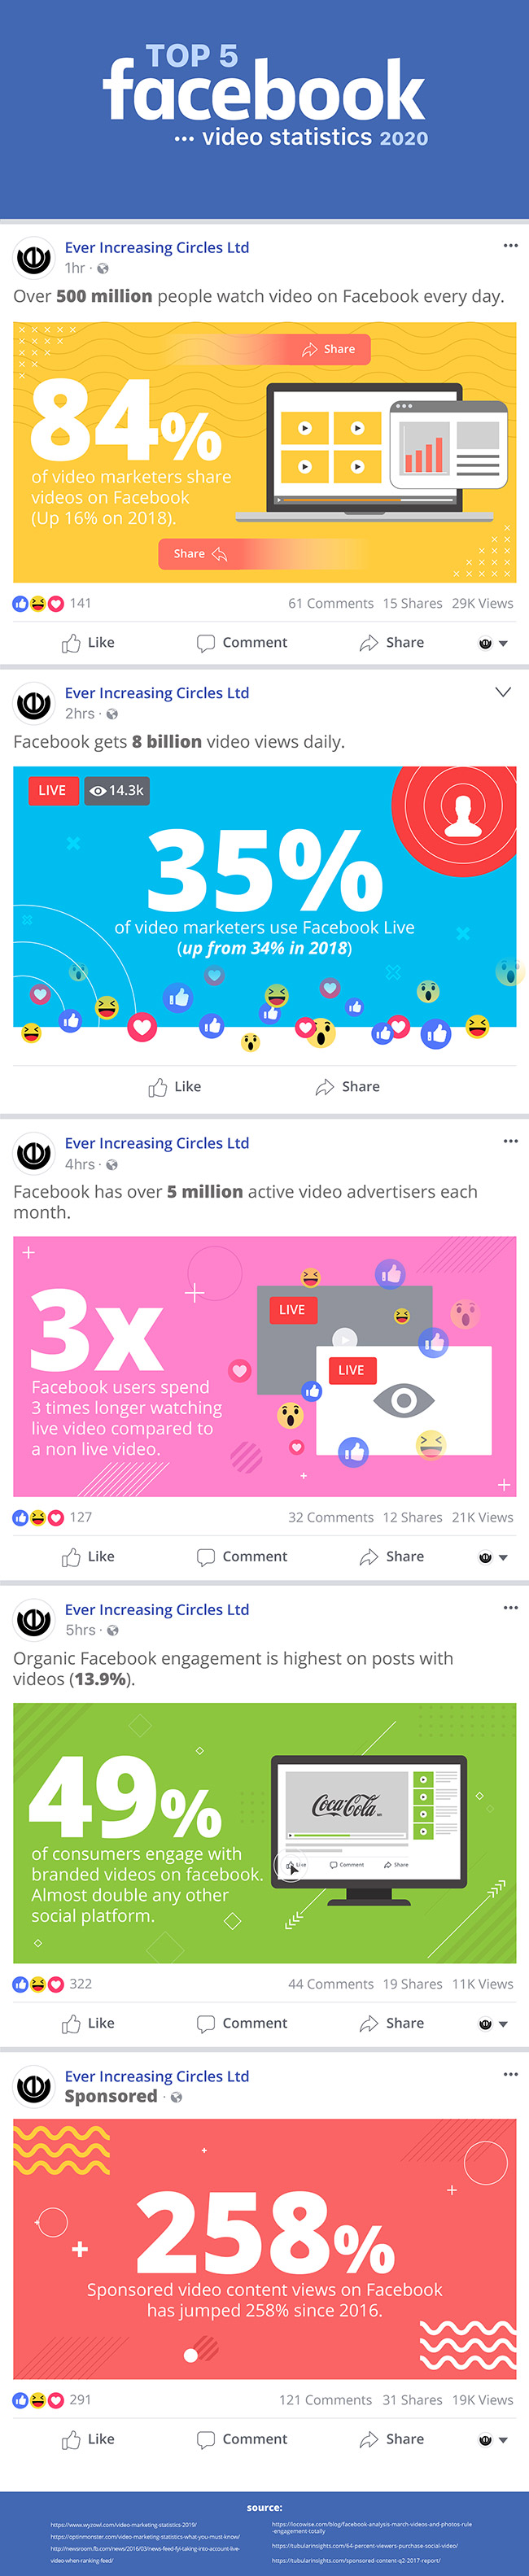 Facebook-video-statistics-Infographics-2020-72dpi[650pxwide]